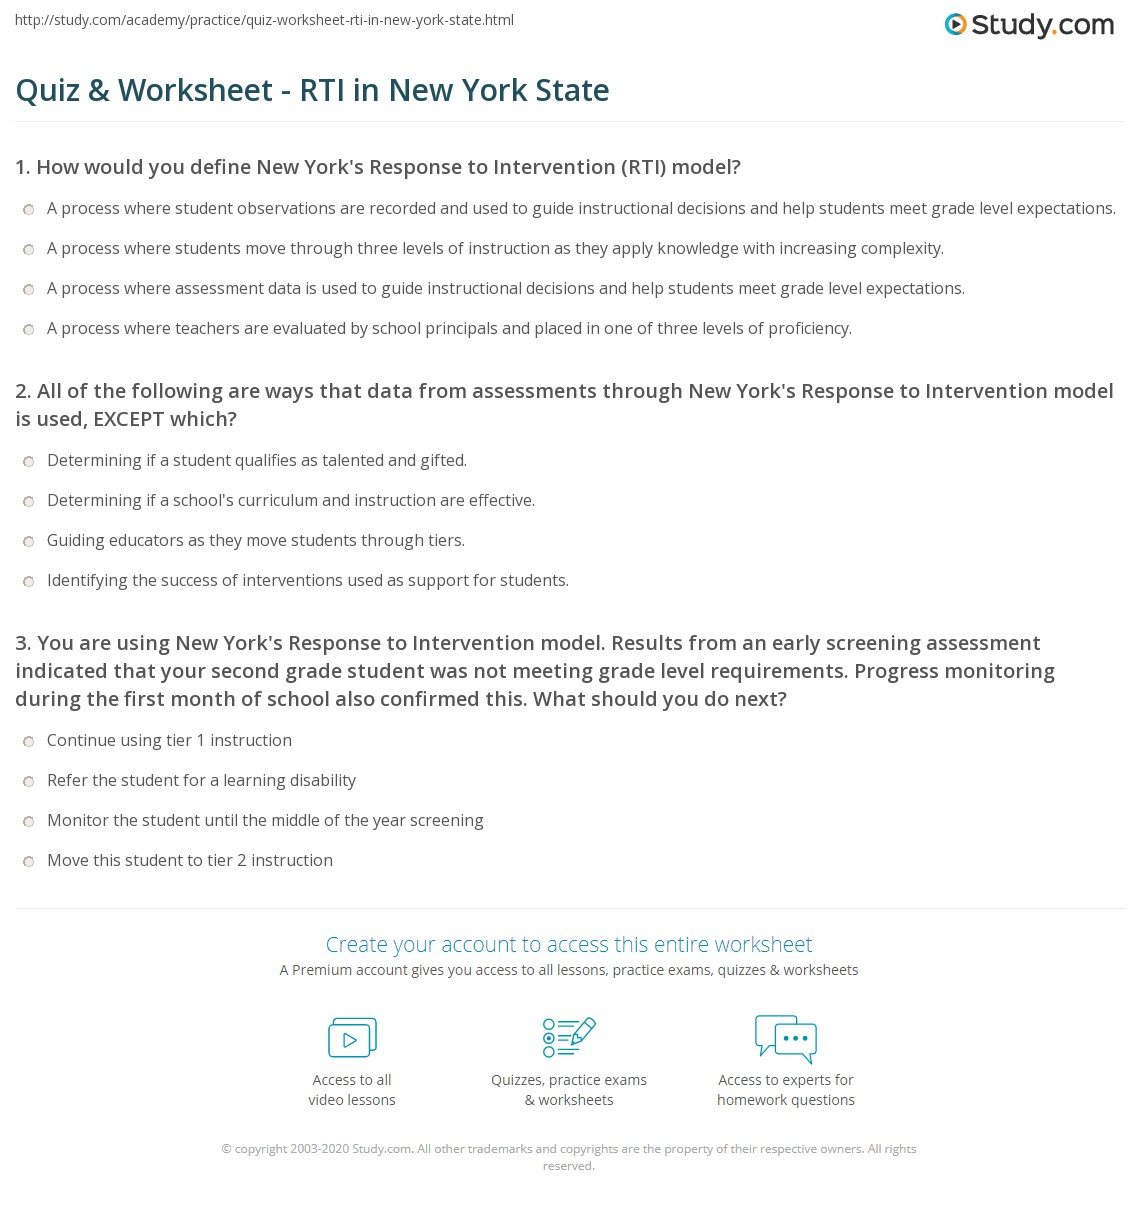 28 Response To Intervention Worksheet Answers